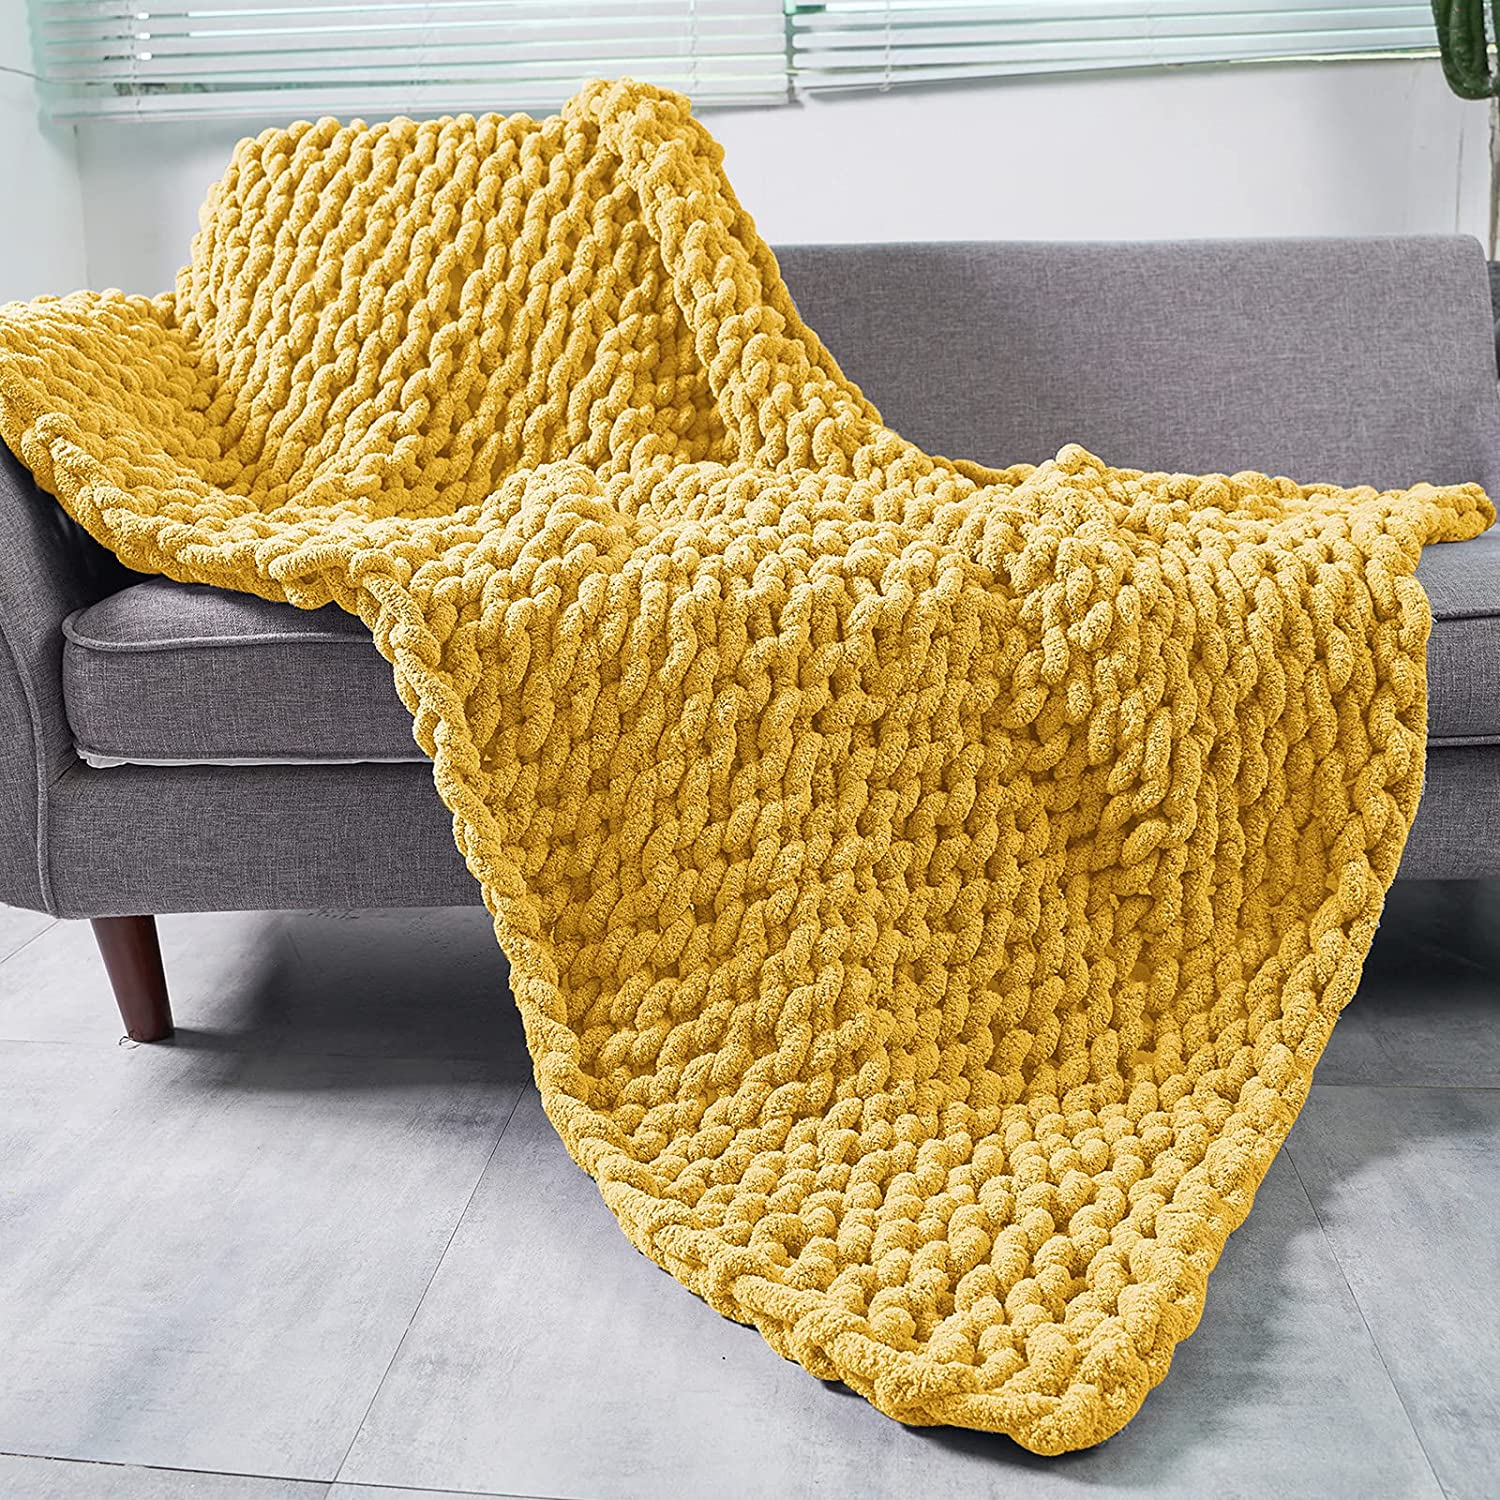 ZHIBESCHOS Chunky Knit Blanket Cozy Recommendation Max 71% OFF Chenille Beautifu Warm Throw